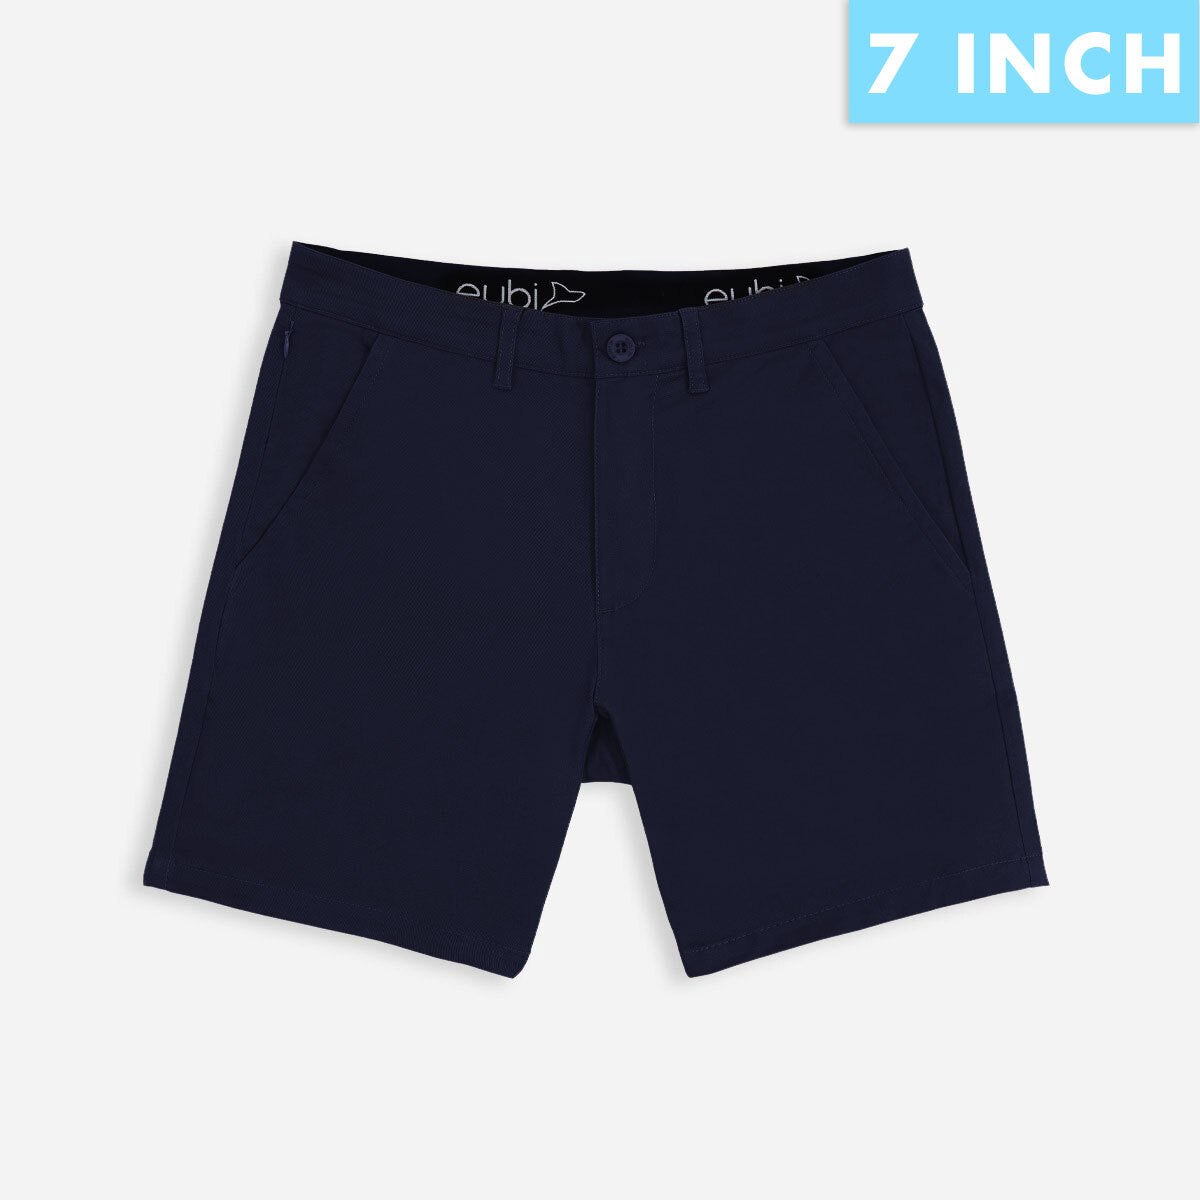 Midnight Blue All Day Shorts 3.0 (Stretch)